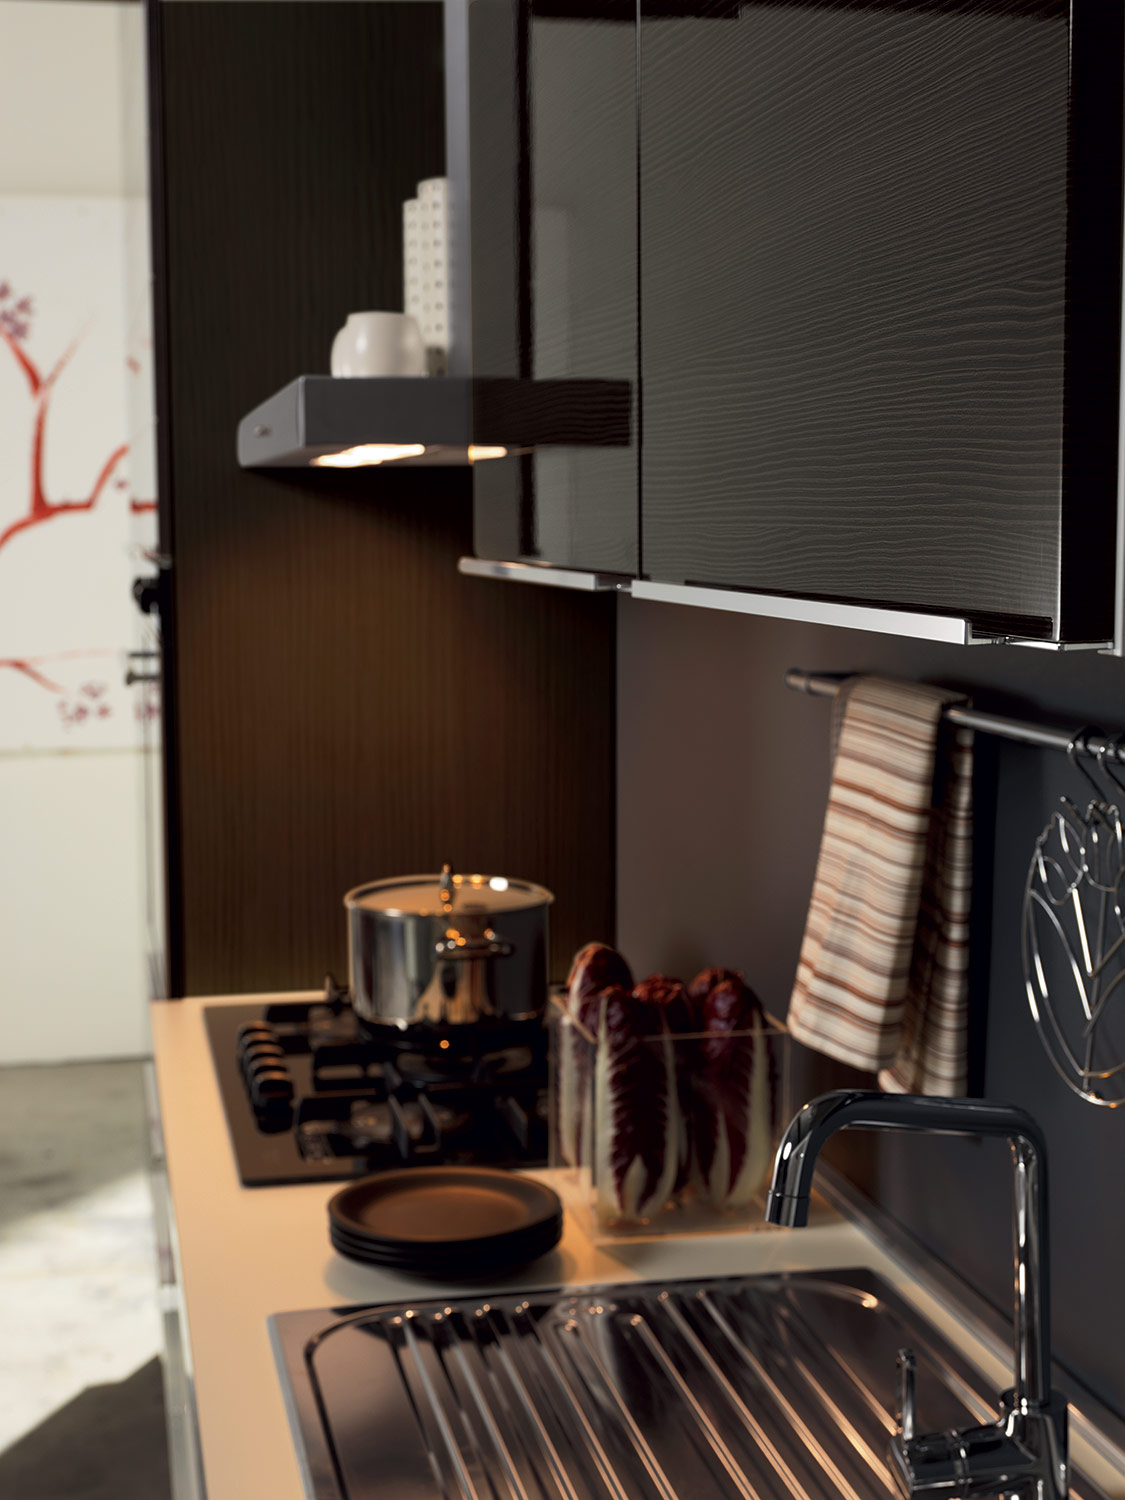 Ciao Cucine. With Ciao Cucine. Emejing Ciao Cucine Aran Pictures ...